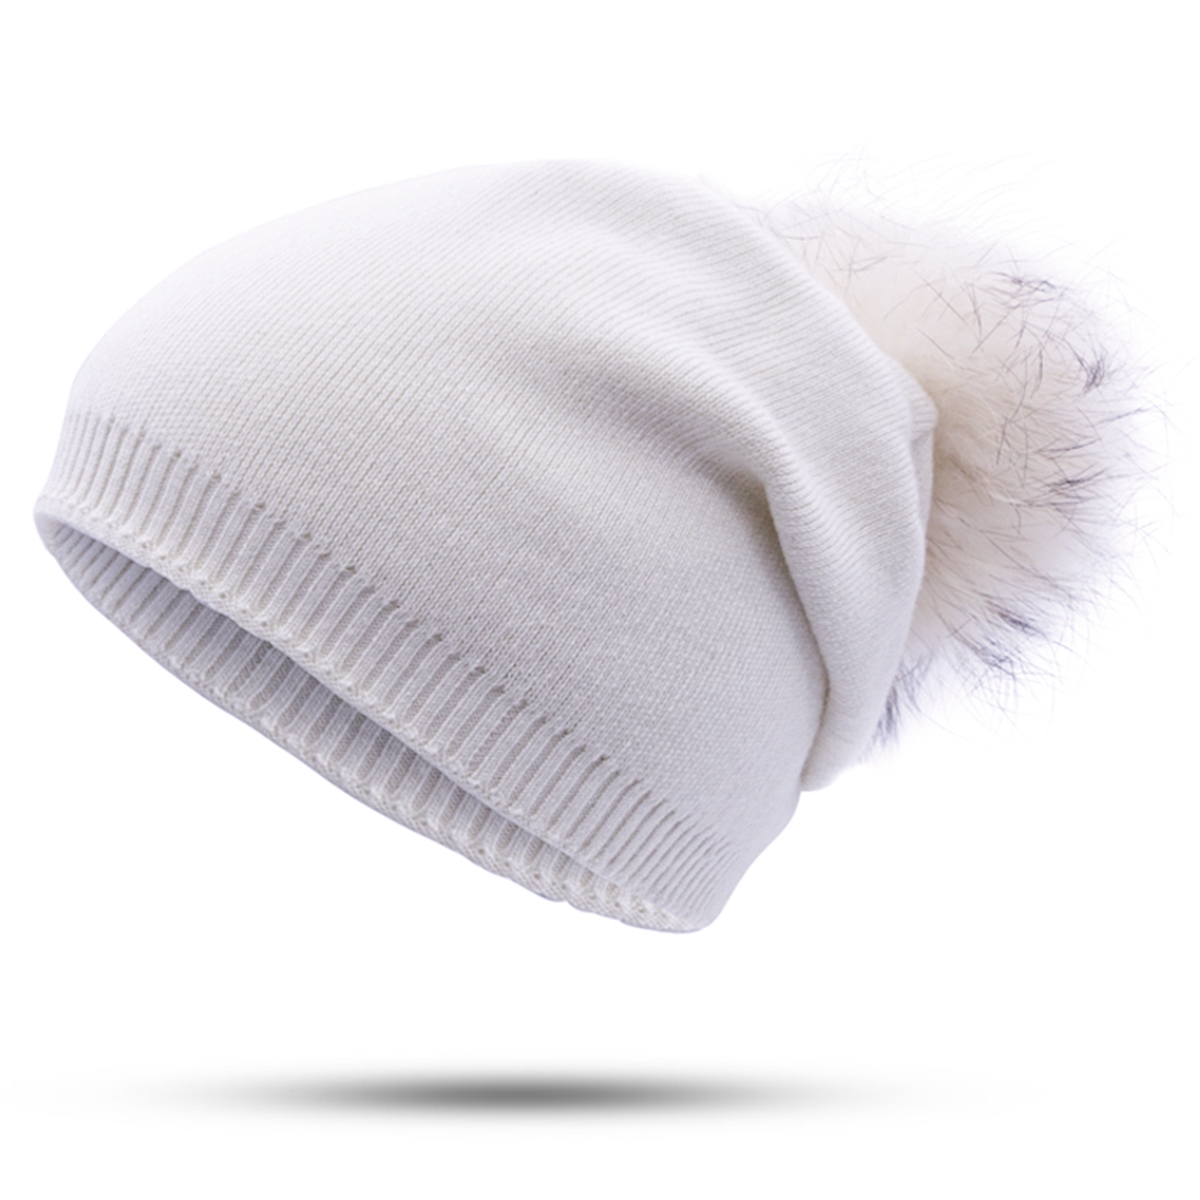 b3226ebdd56 ... WISH CLUB Fashion Winter Women s Hat Skullies Beanies Pom Poms Brand  Winter Cap Cashmere Warm Hat ...